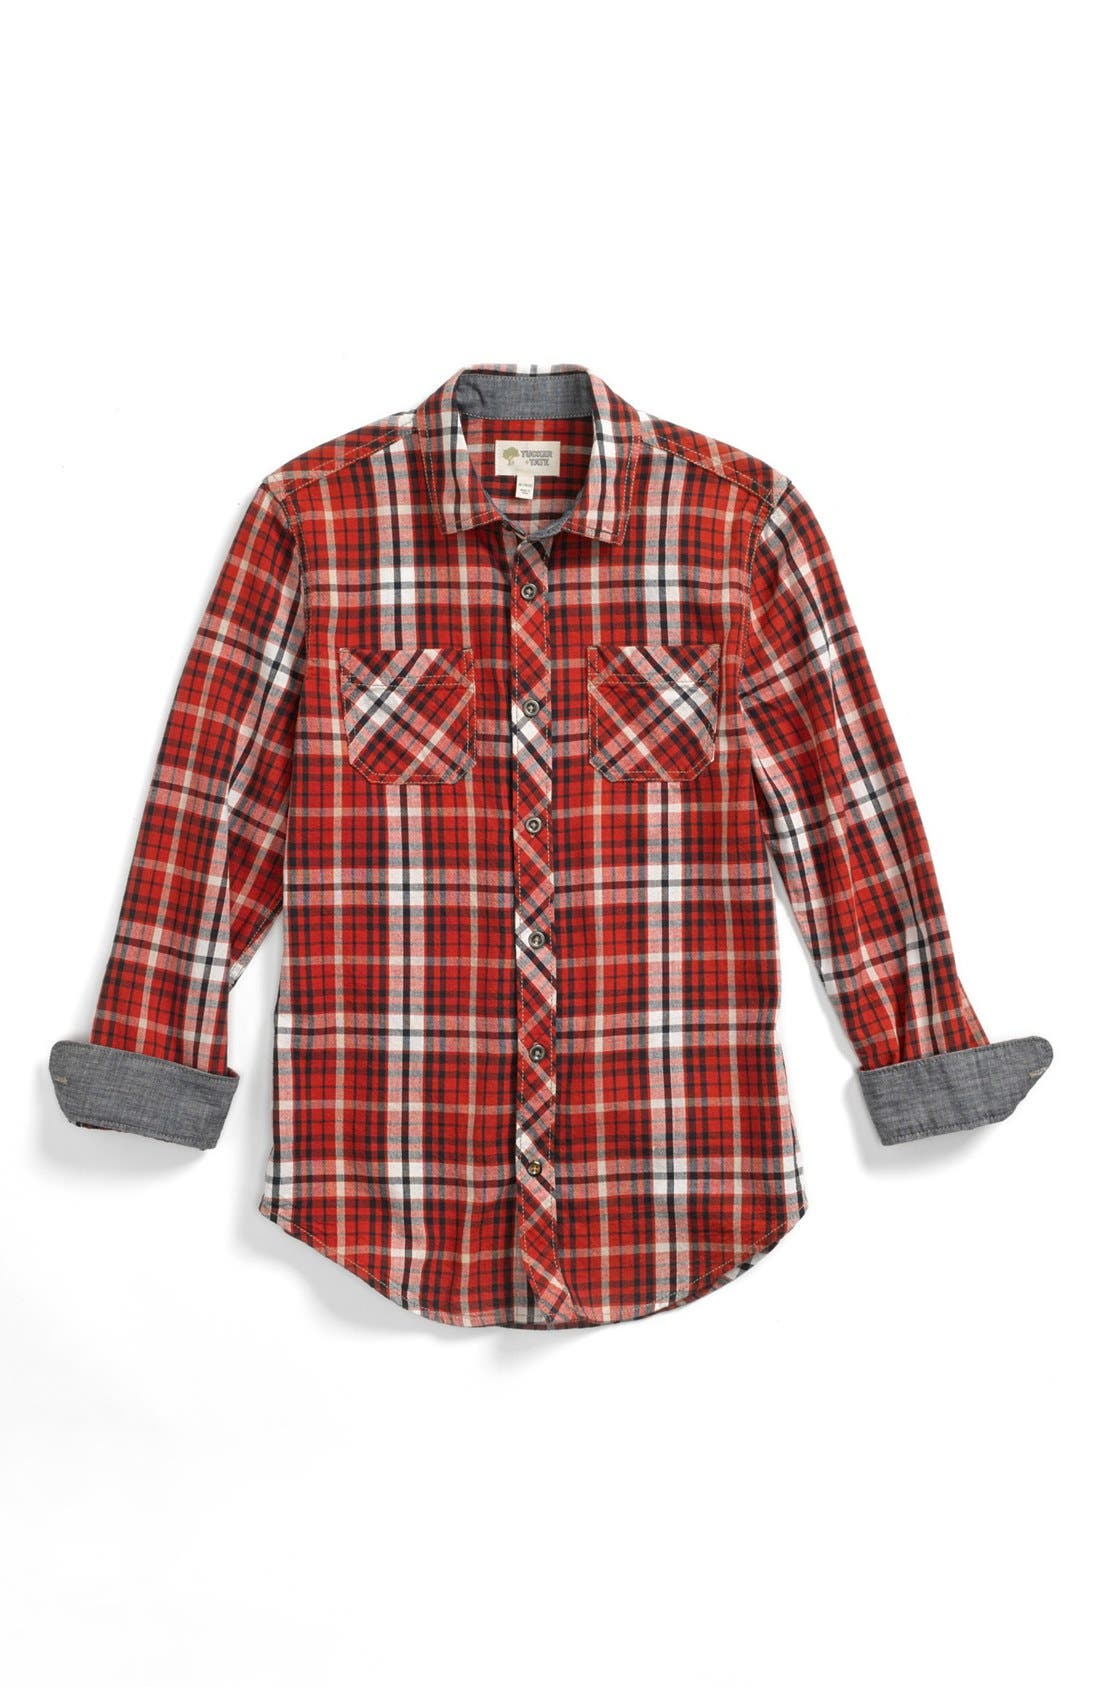 Main Image - Tucker + Tate 'Bluewater' Plaid Shirt (Little Boys)